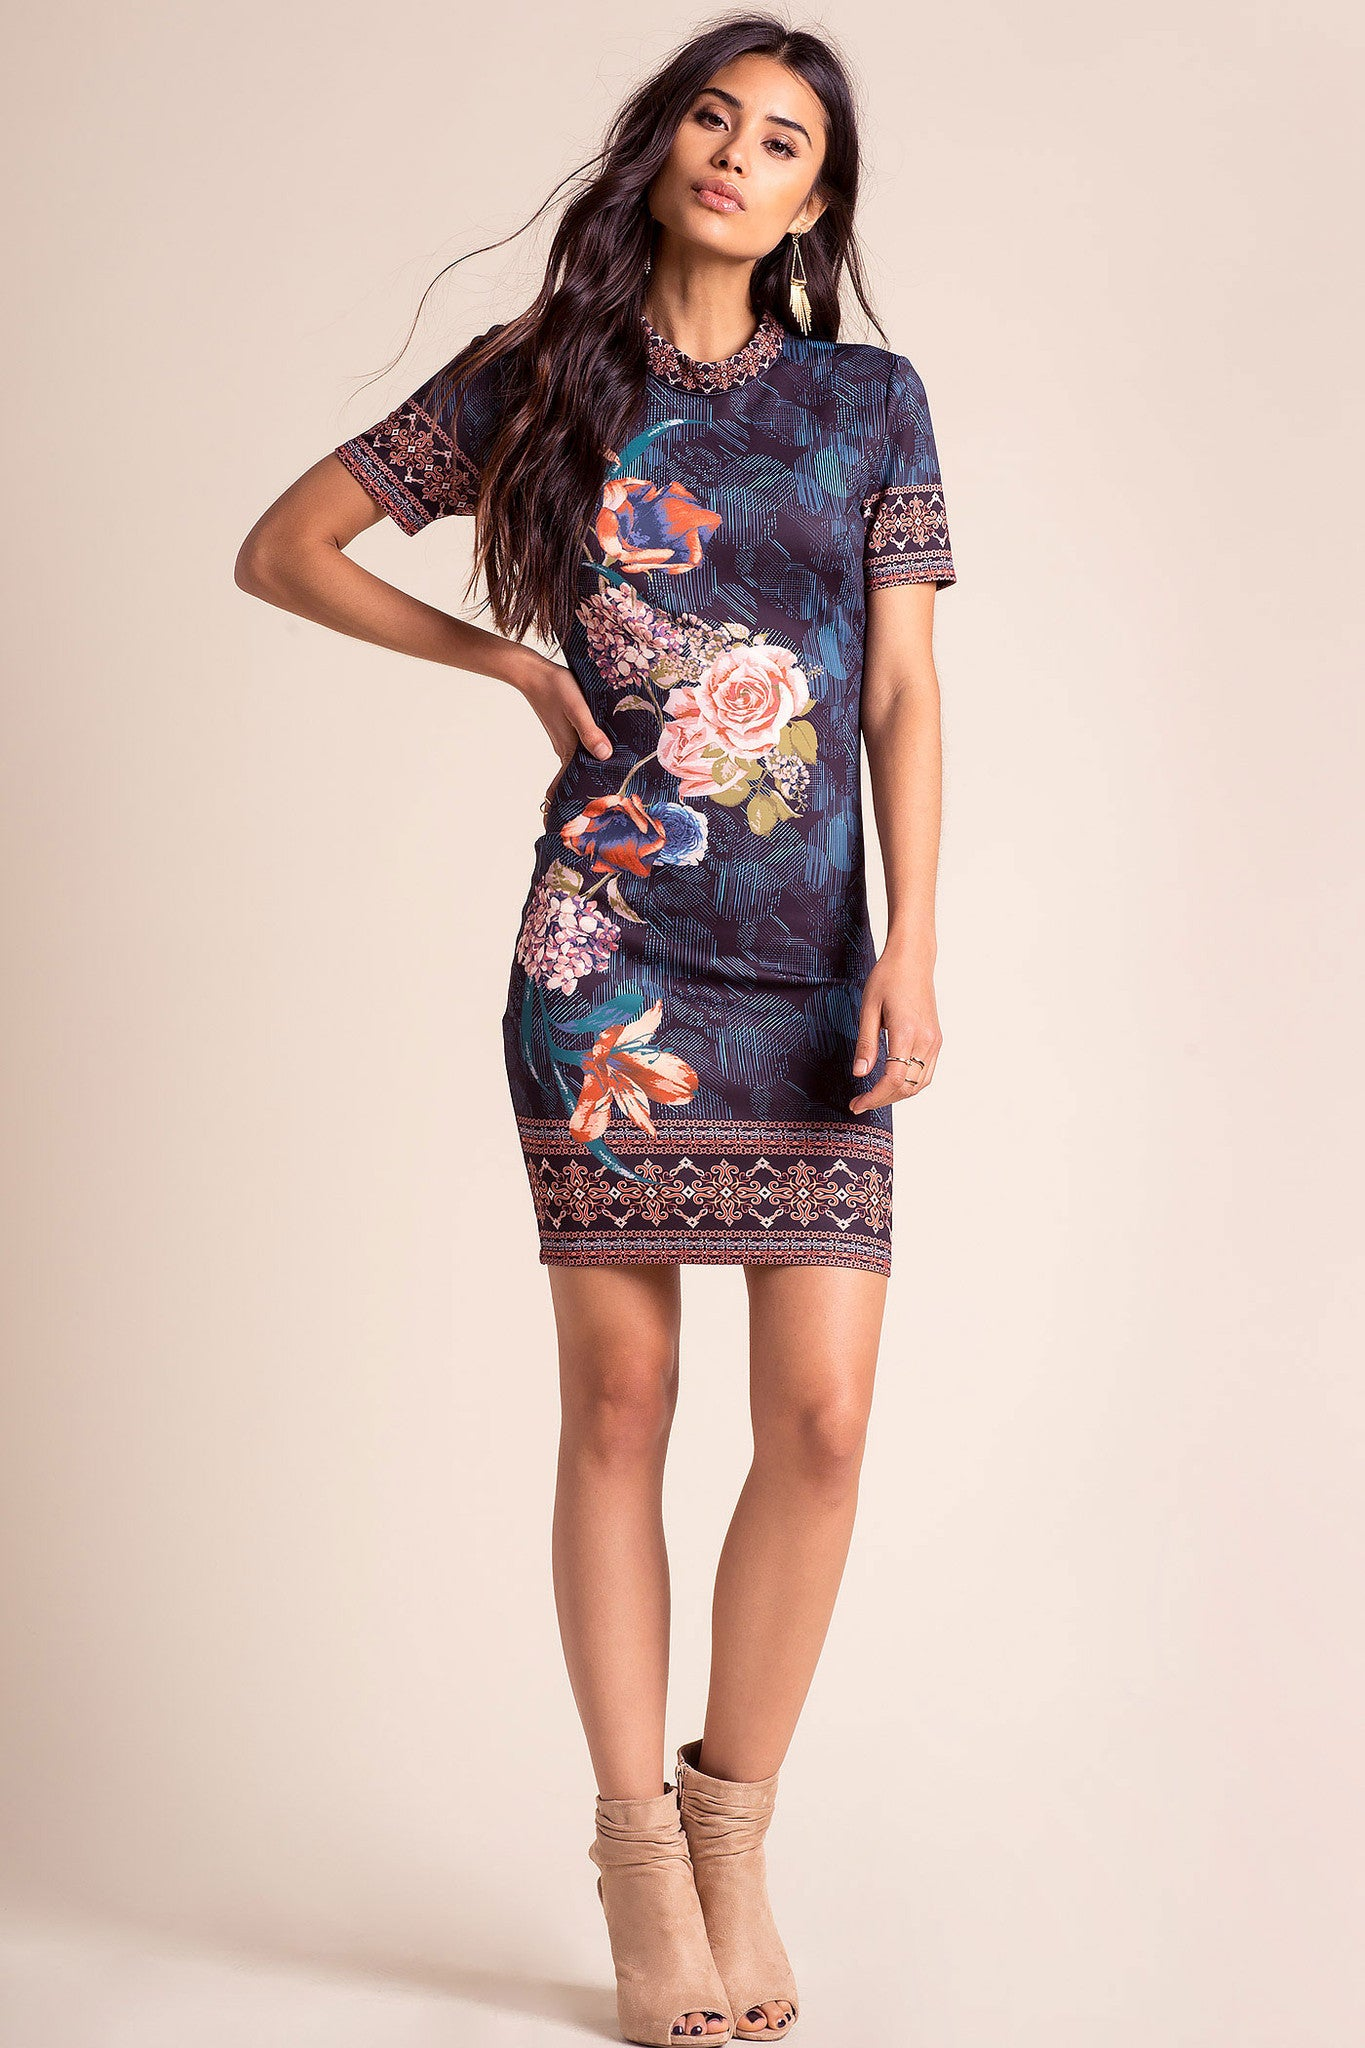 women's short sleeve navy blue floral print bodycon mini party dress. Front view.